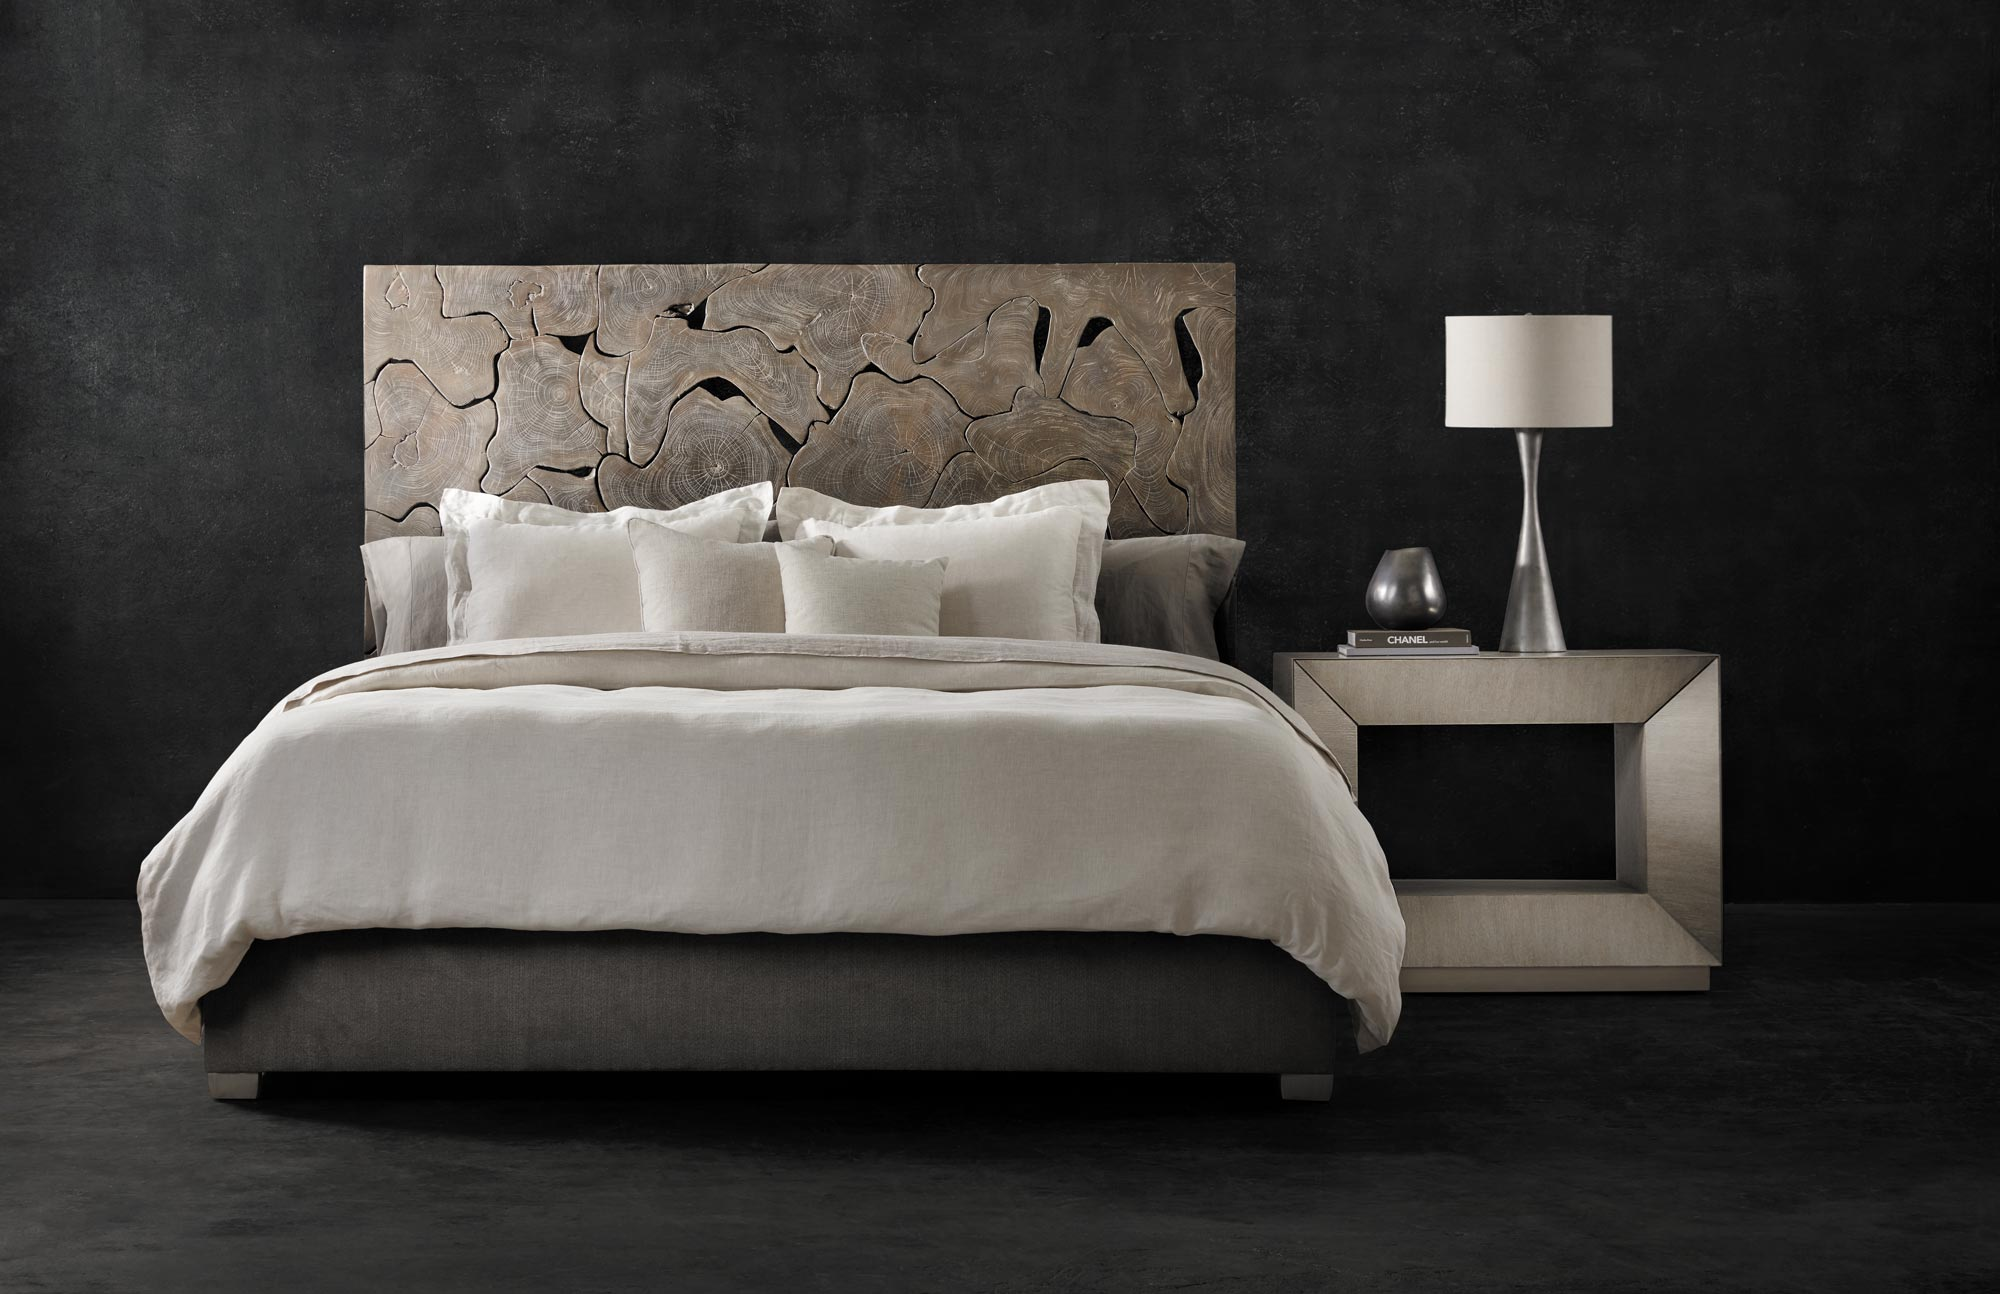 Modern Bedroom Furniture Trends - Create Your Perfect Nighttime